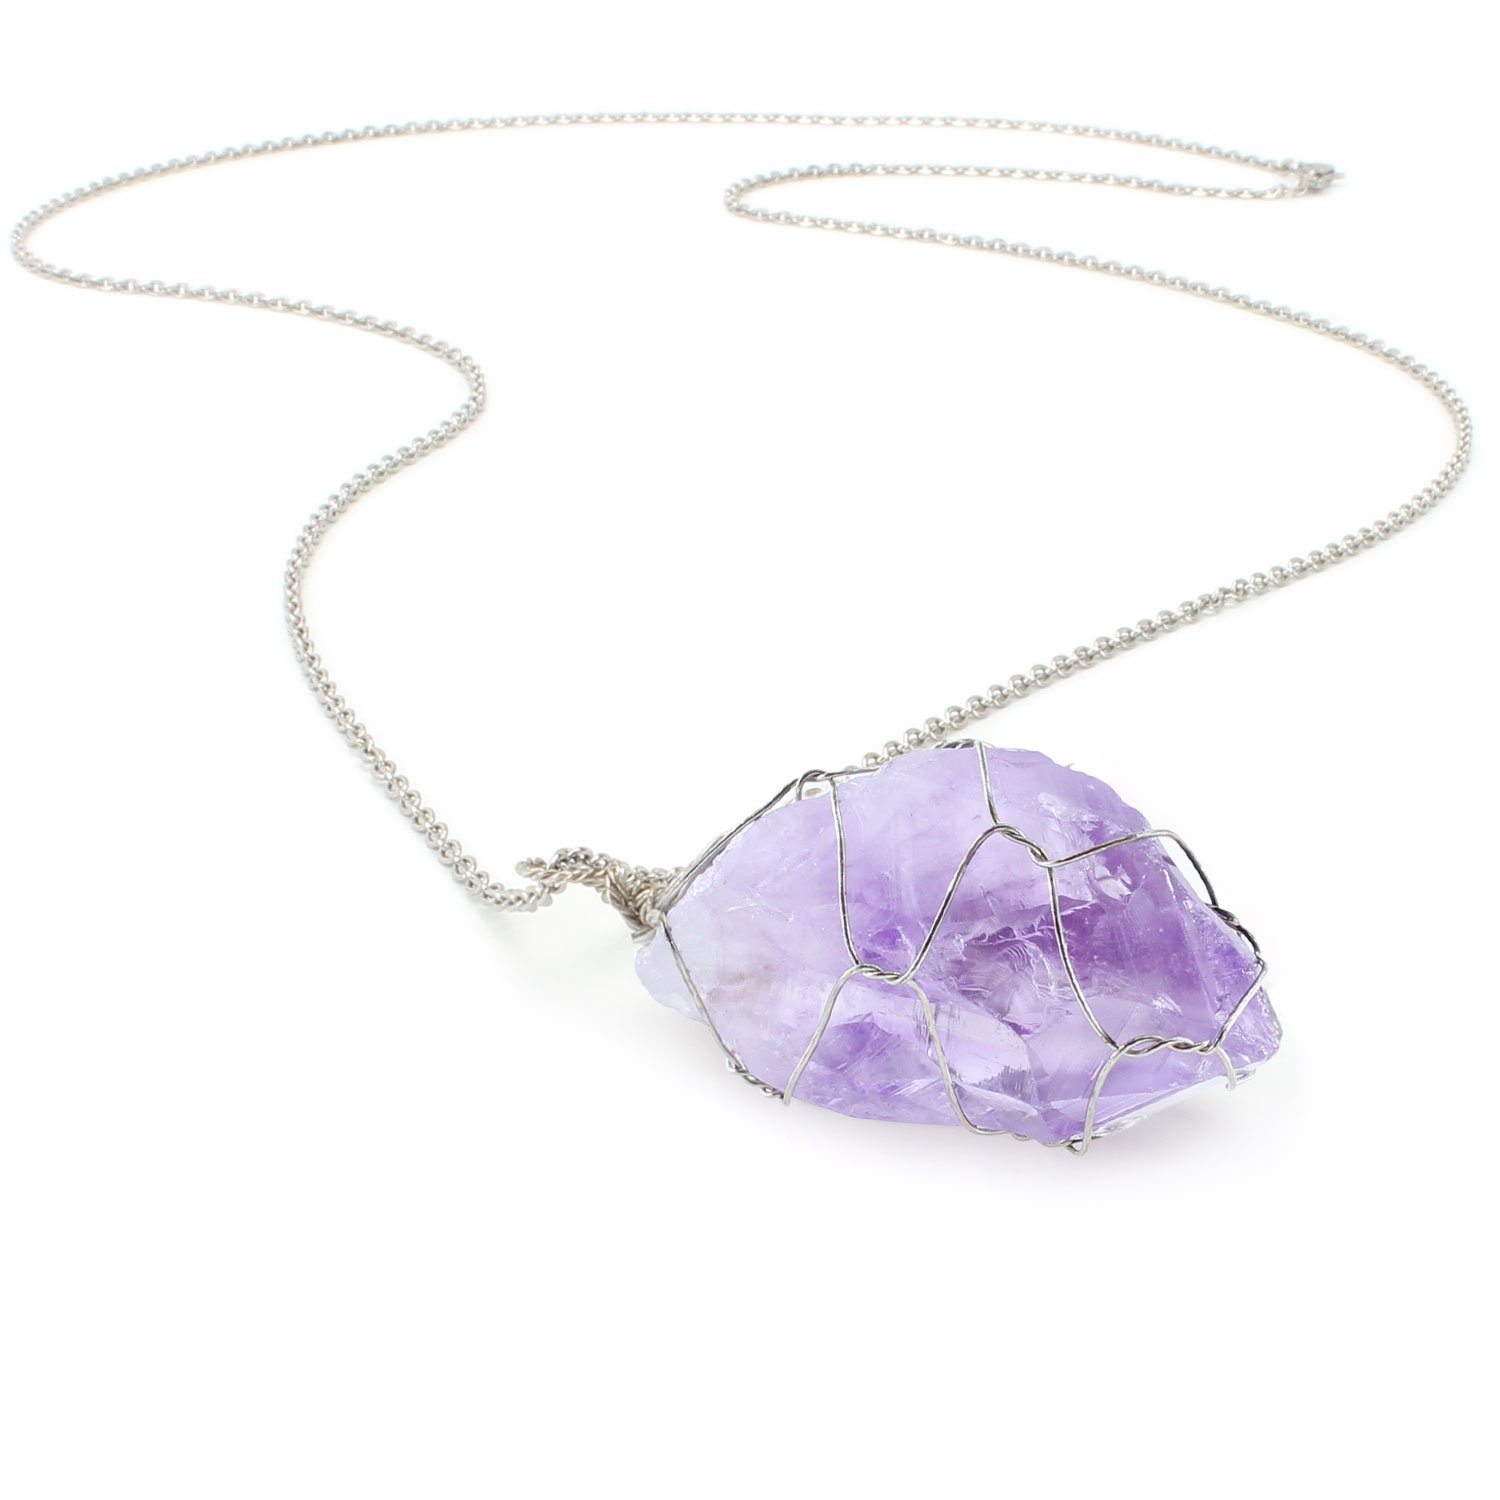 BOUTIQUELOVIN Purple Amethyst Quartz Stone Healing Crystal Pendant Necklace 30'' Long Silver Chain